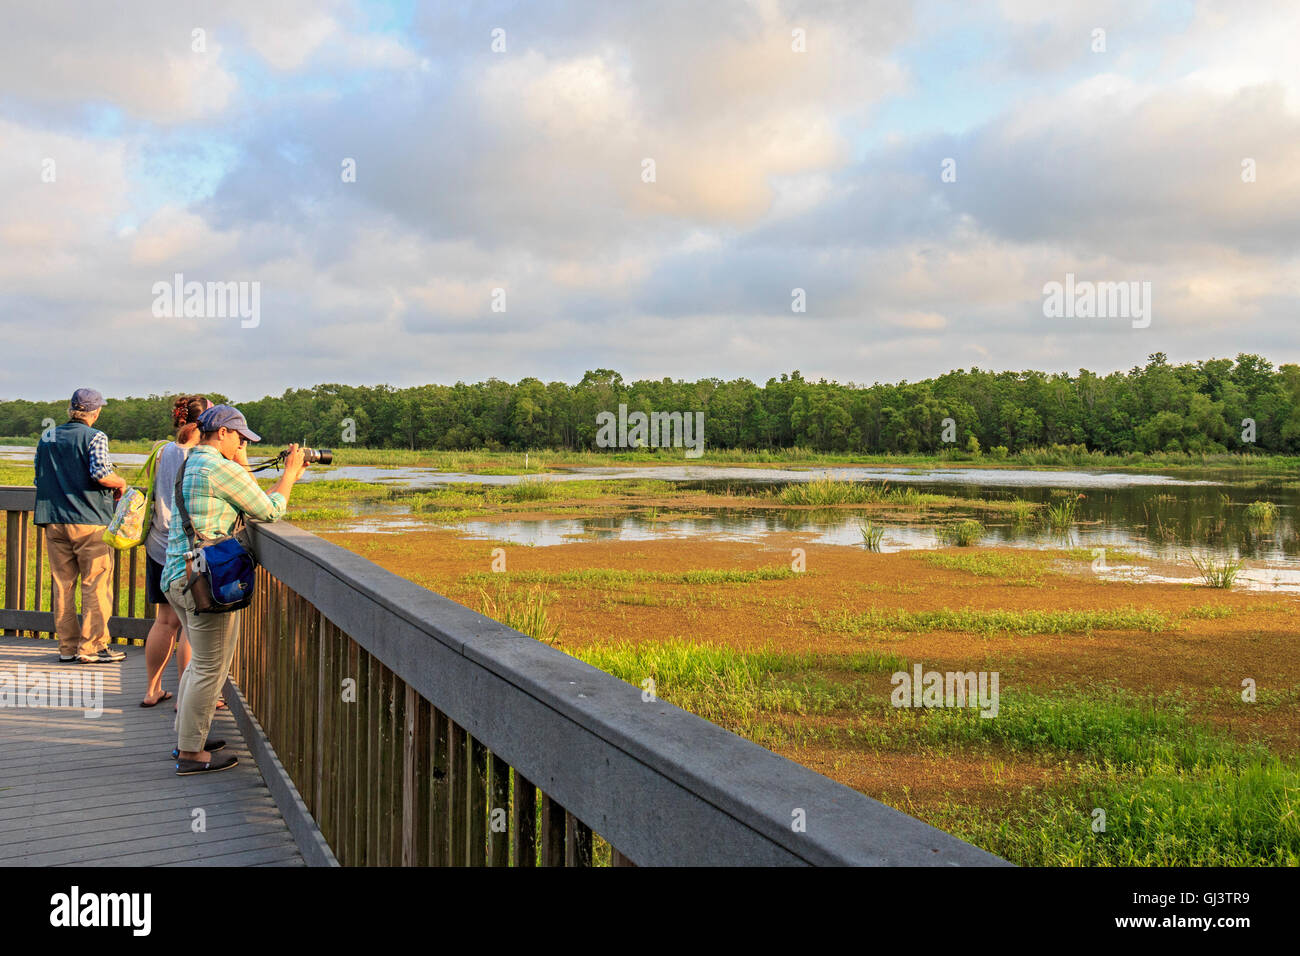 View from Cameron Prairie Natinal Wildlife Refuge Center boardwalk. Great place to learn about Louisiana's birds. - Stock Image